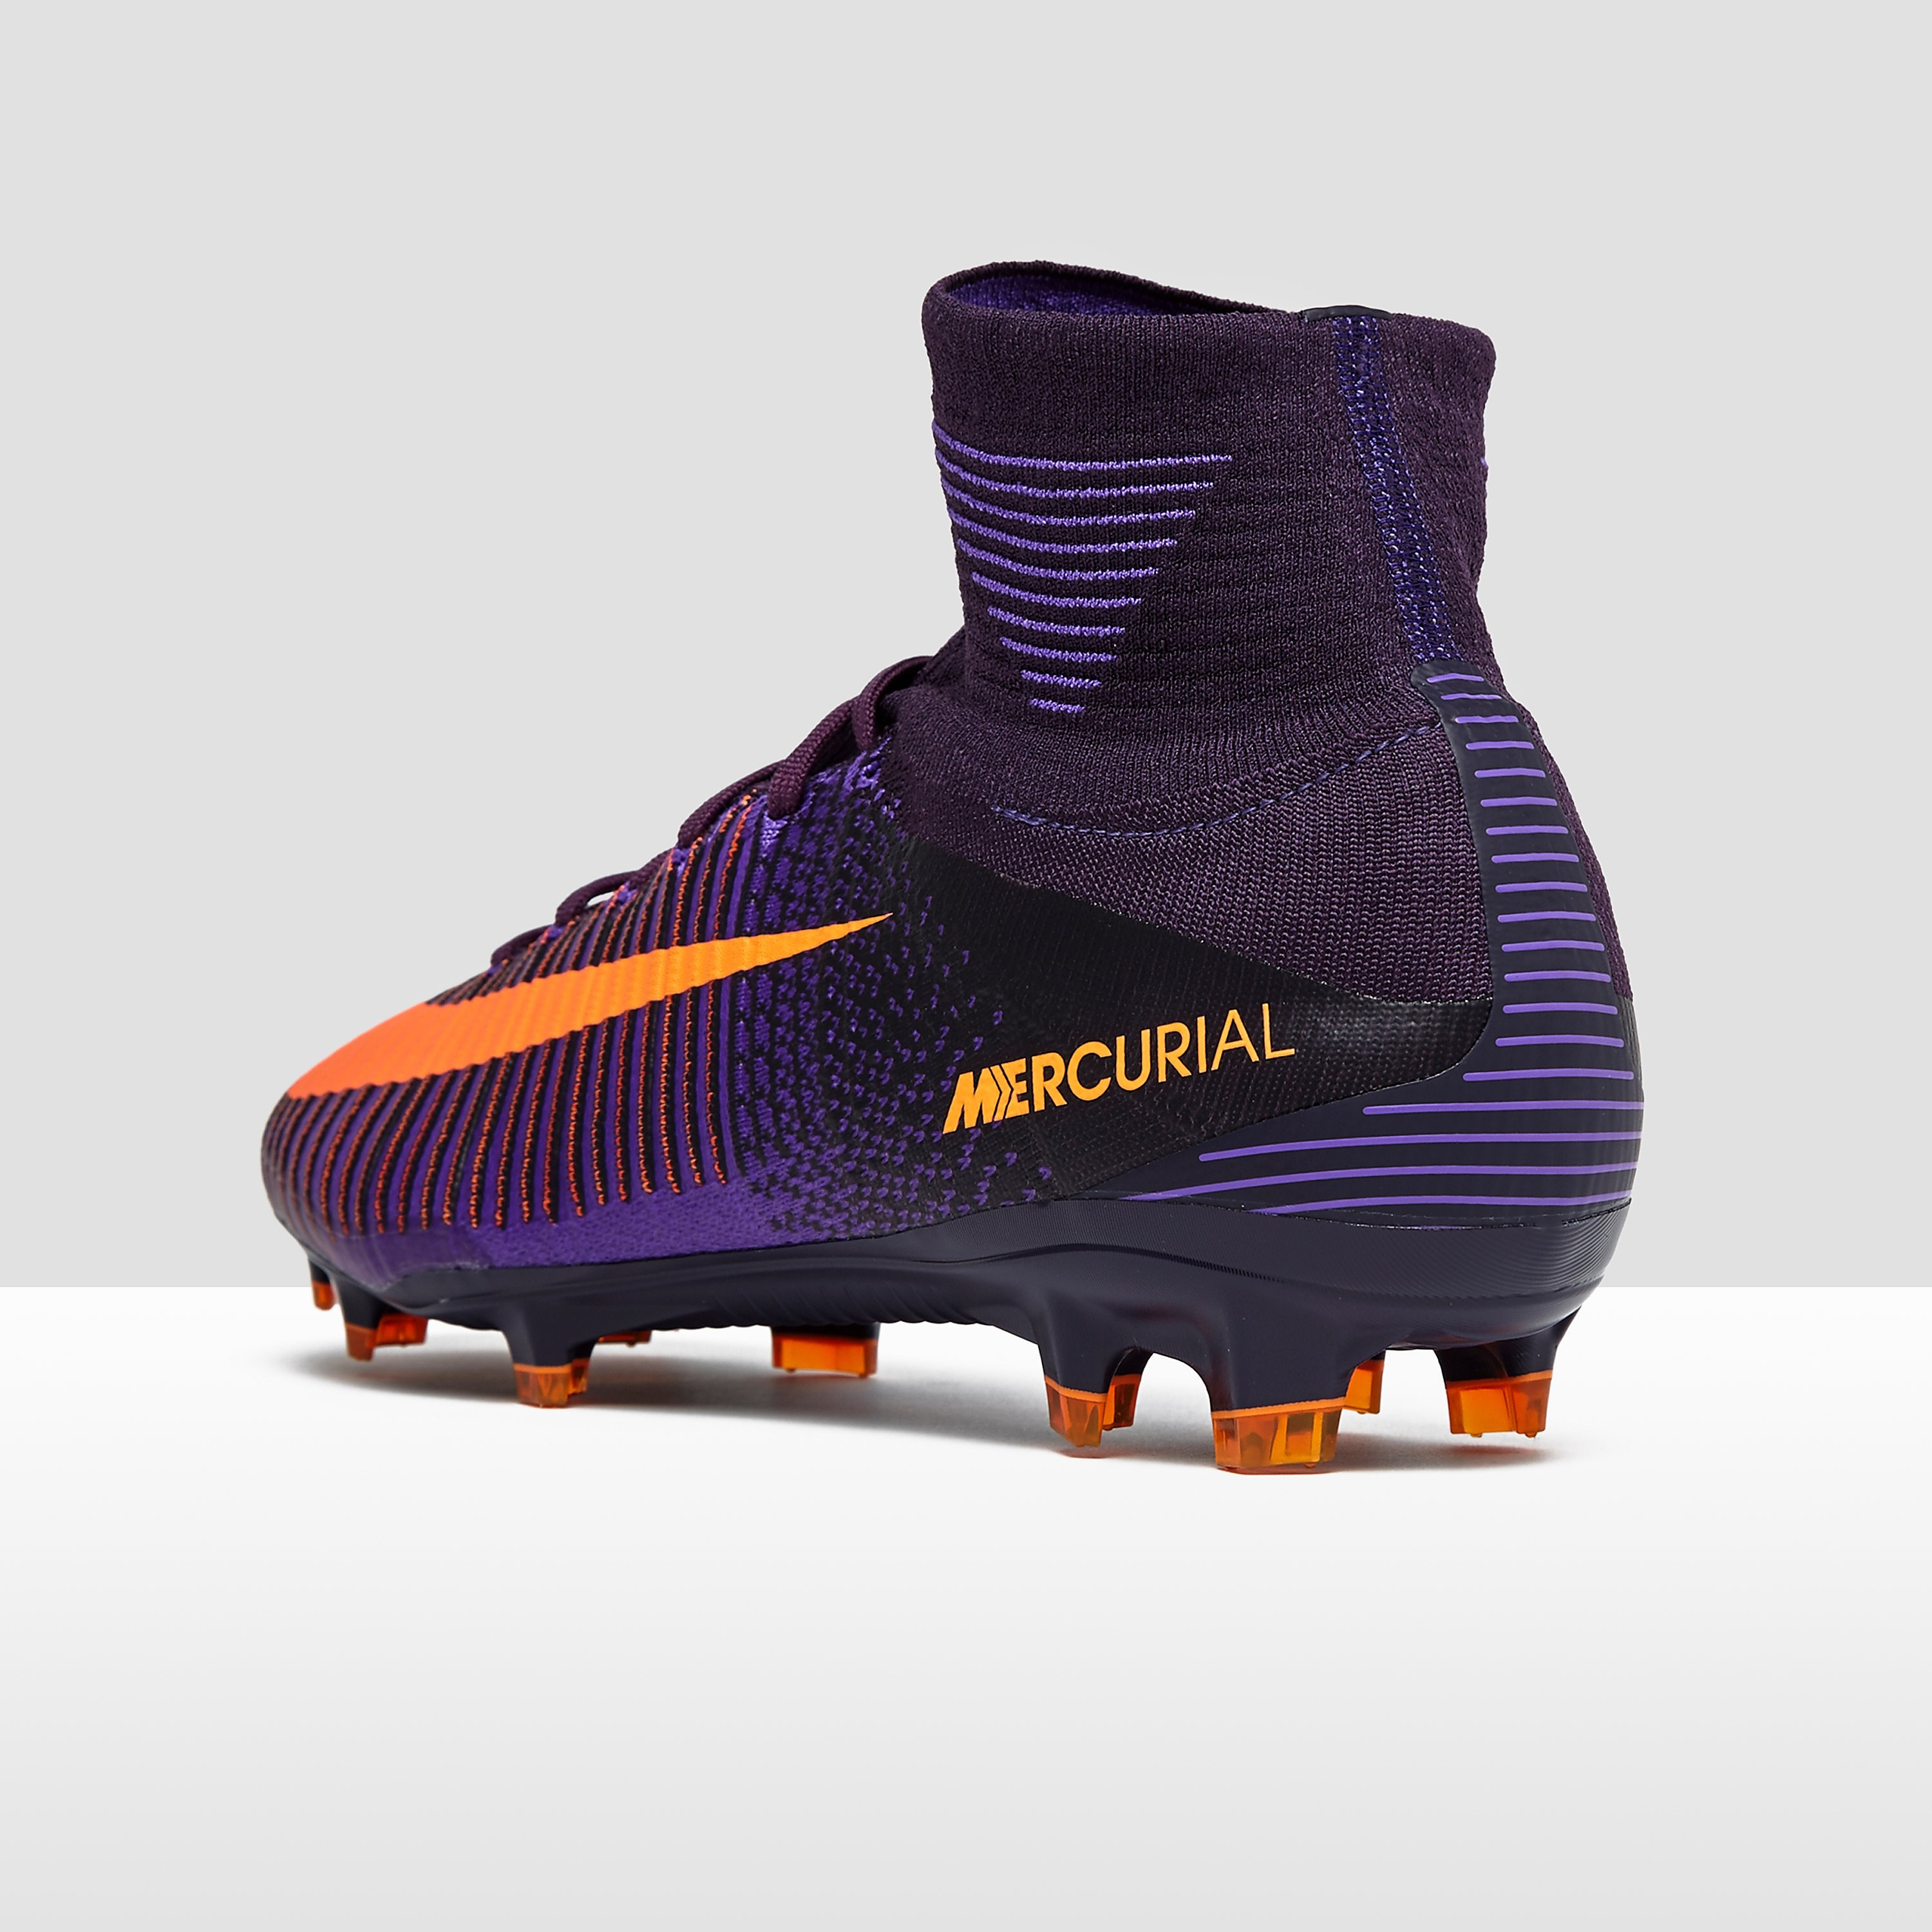 Nike Mercurial Superfly V Firm Ground Football Boots